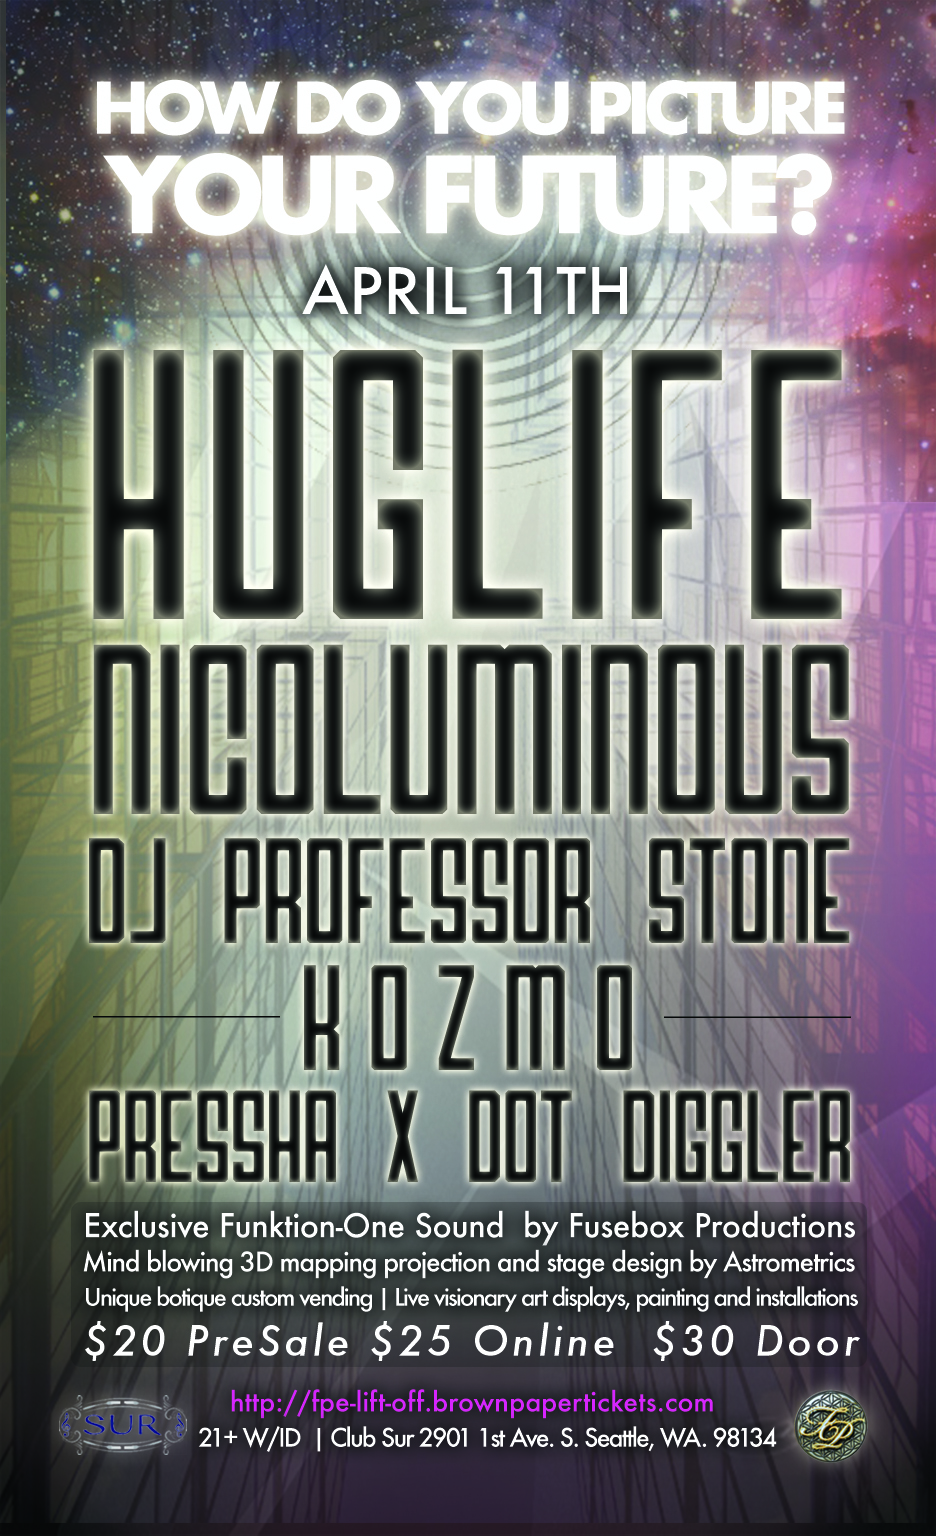 "Future Perfect presents ""Lift Off"" with Huglife, Nico Luminous, & Professor Stone!"